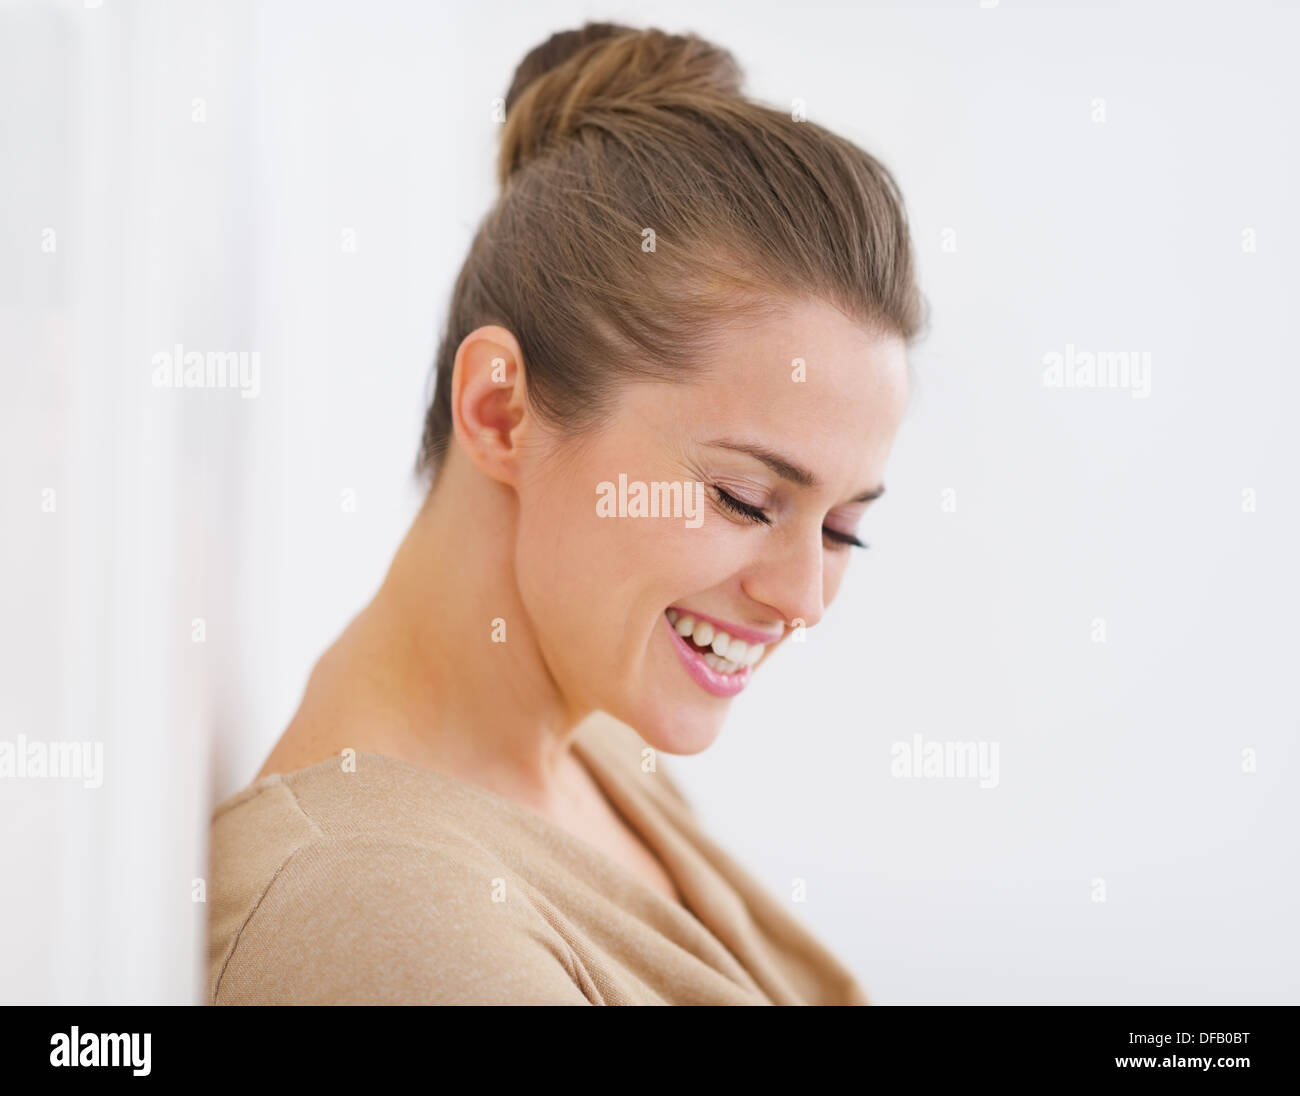 Portrait of smiling young woman - Stock Image